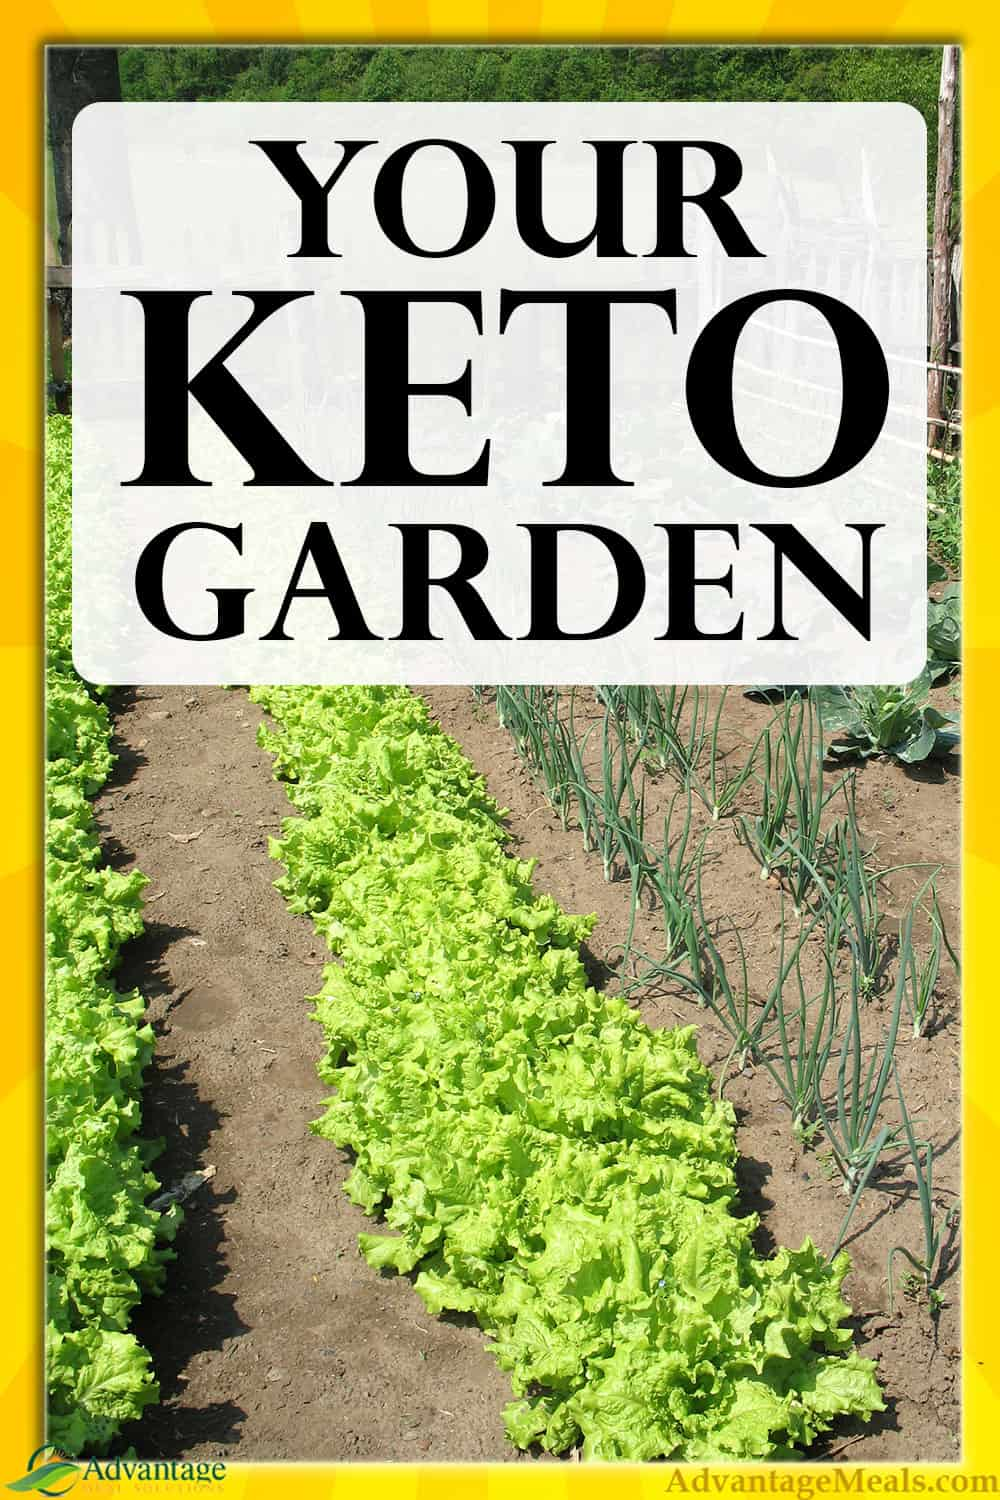 Plant a Keto Garden and you\'ll have better and cheaper food for your keto diet.  If budget keto is a concern for you, you should supplement your keto way of eating with a ketogenic garden. #Keto #AdvantageMeals @AdvantageMeals